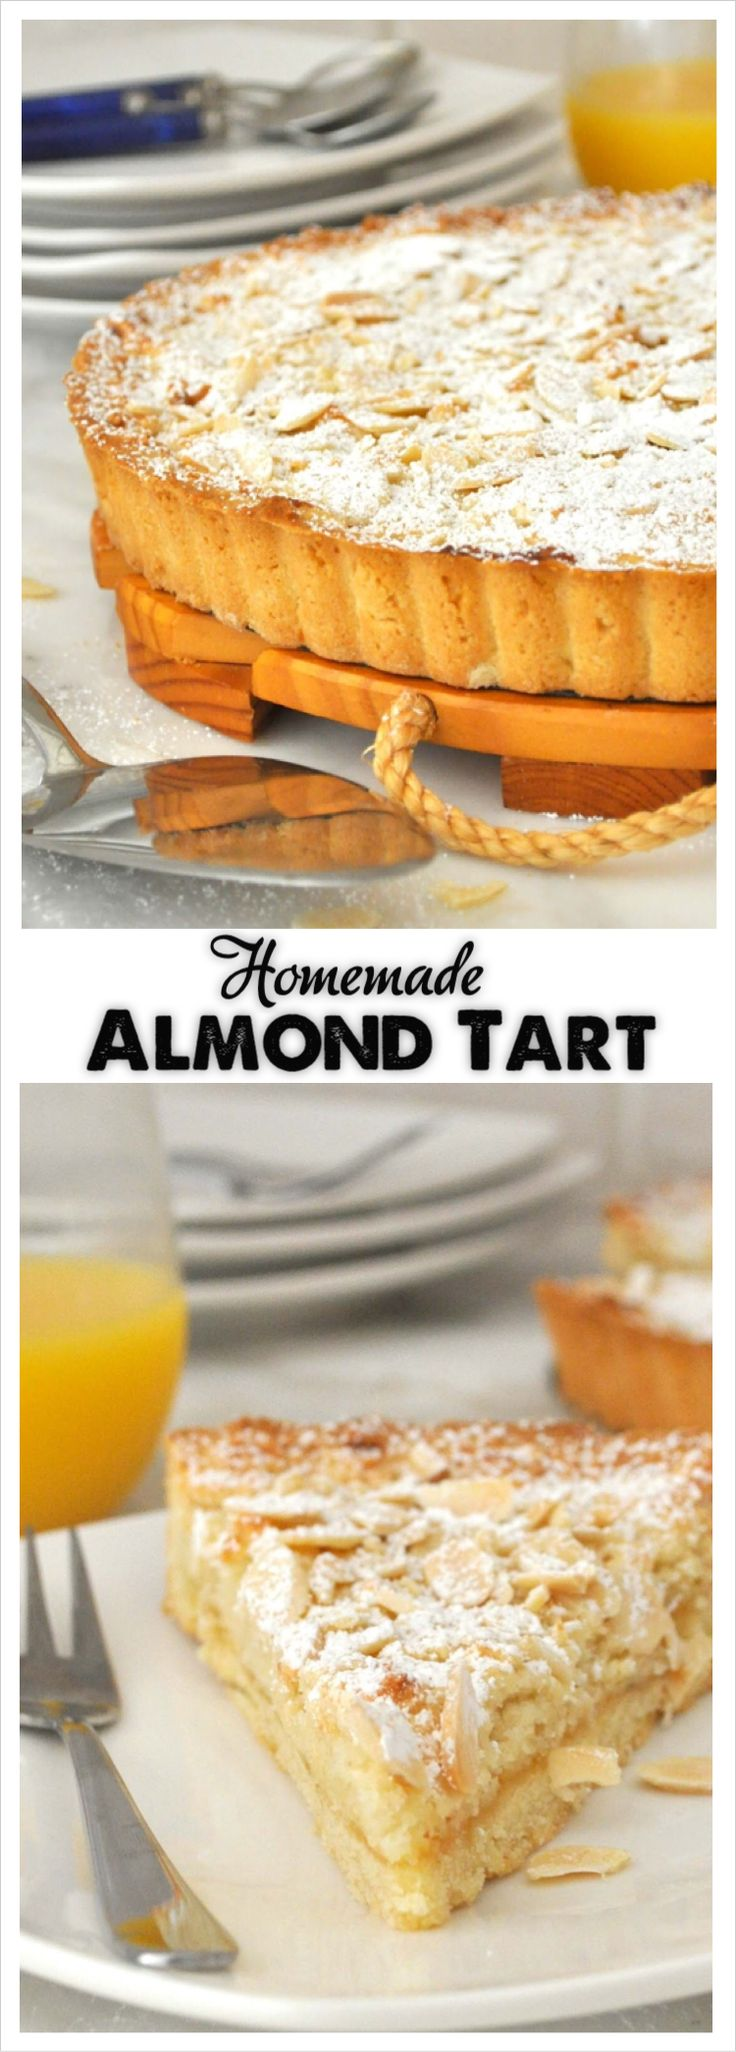 Here is how to make a delicious almond tart from scratch with a moist and soft almond filling over a buttery crust and a little spread of apricot preserve for extra flavor